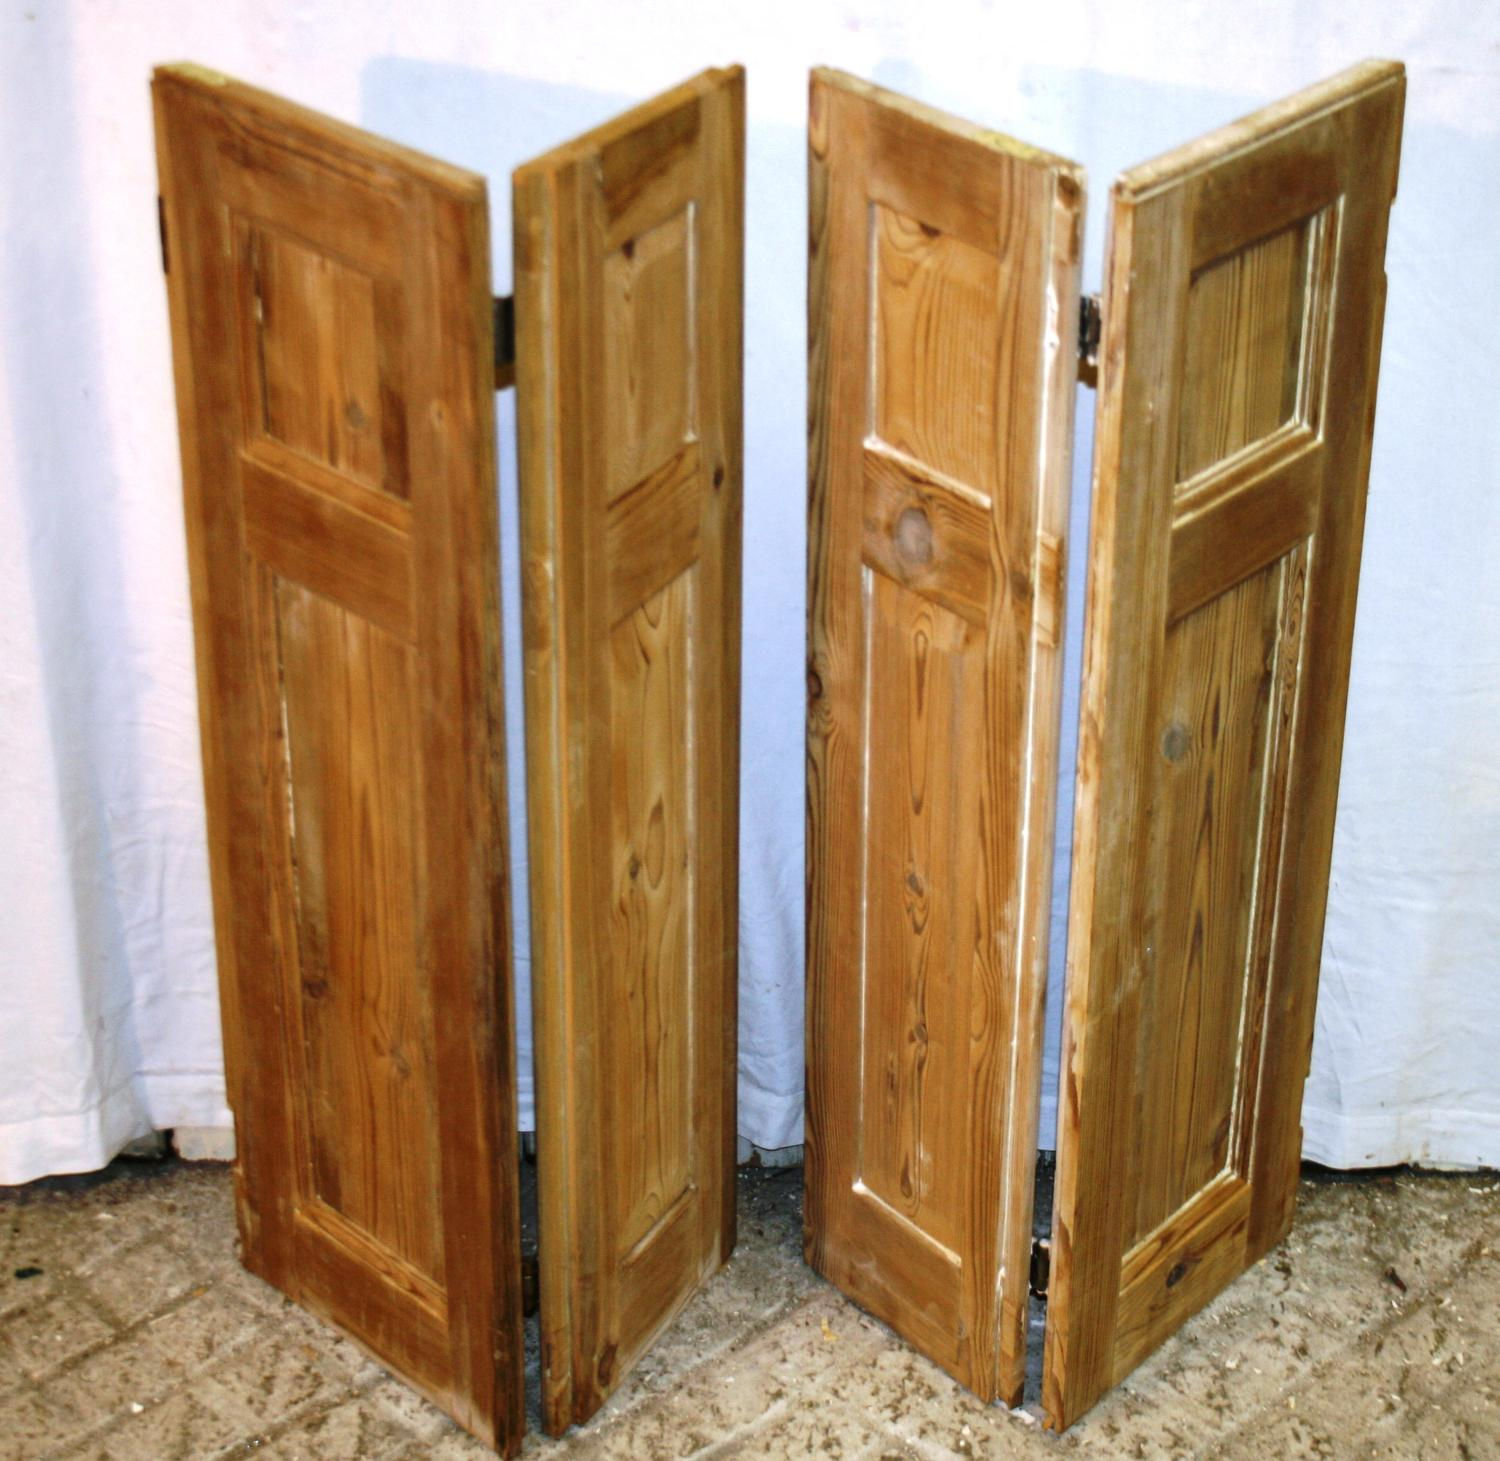 CS0013 A Pair of Georgian Stripped Pine Shutters w 4 Shutters